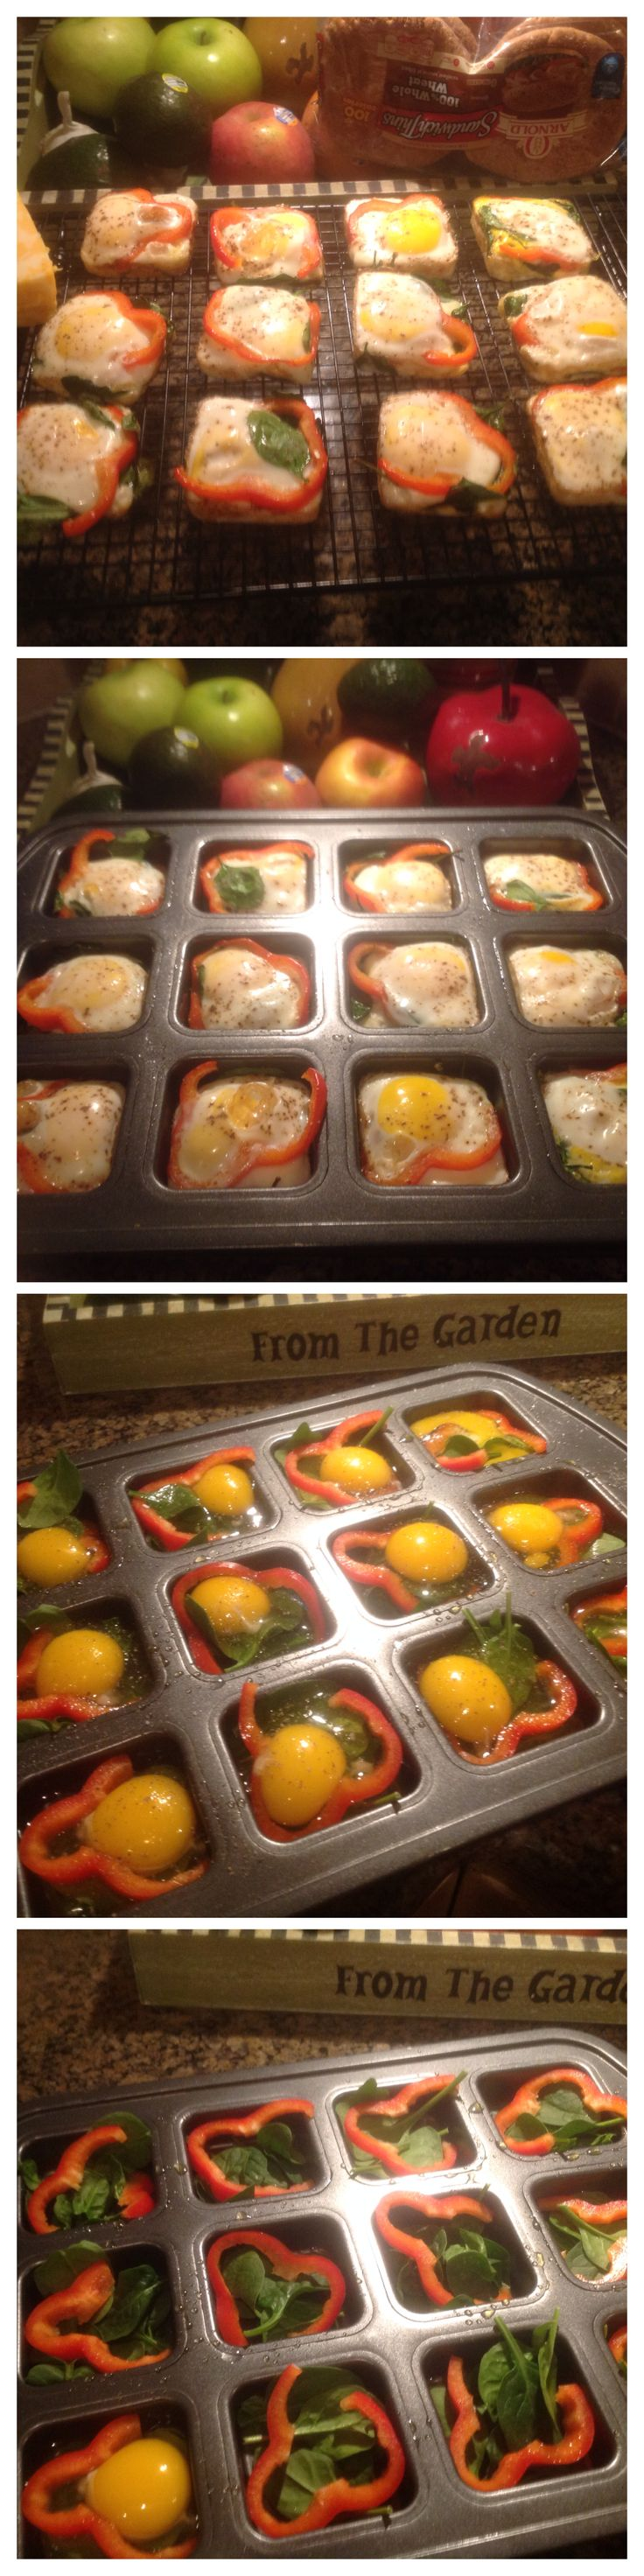 Yummy! Created this for a healthy, quick breakfast option. Organic baby spinach, organic eggs and red bell pepper. Bake at 350 for 15 min. Pampered Chef brownie pan.